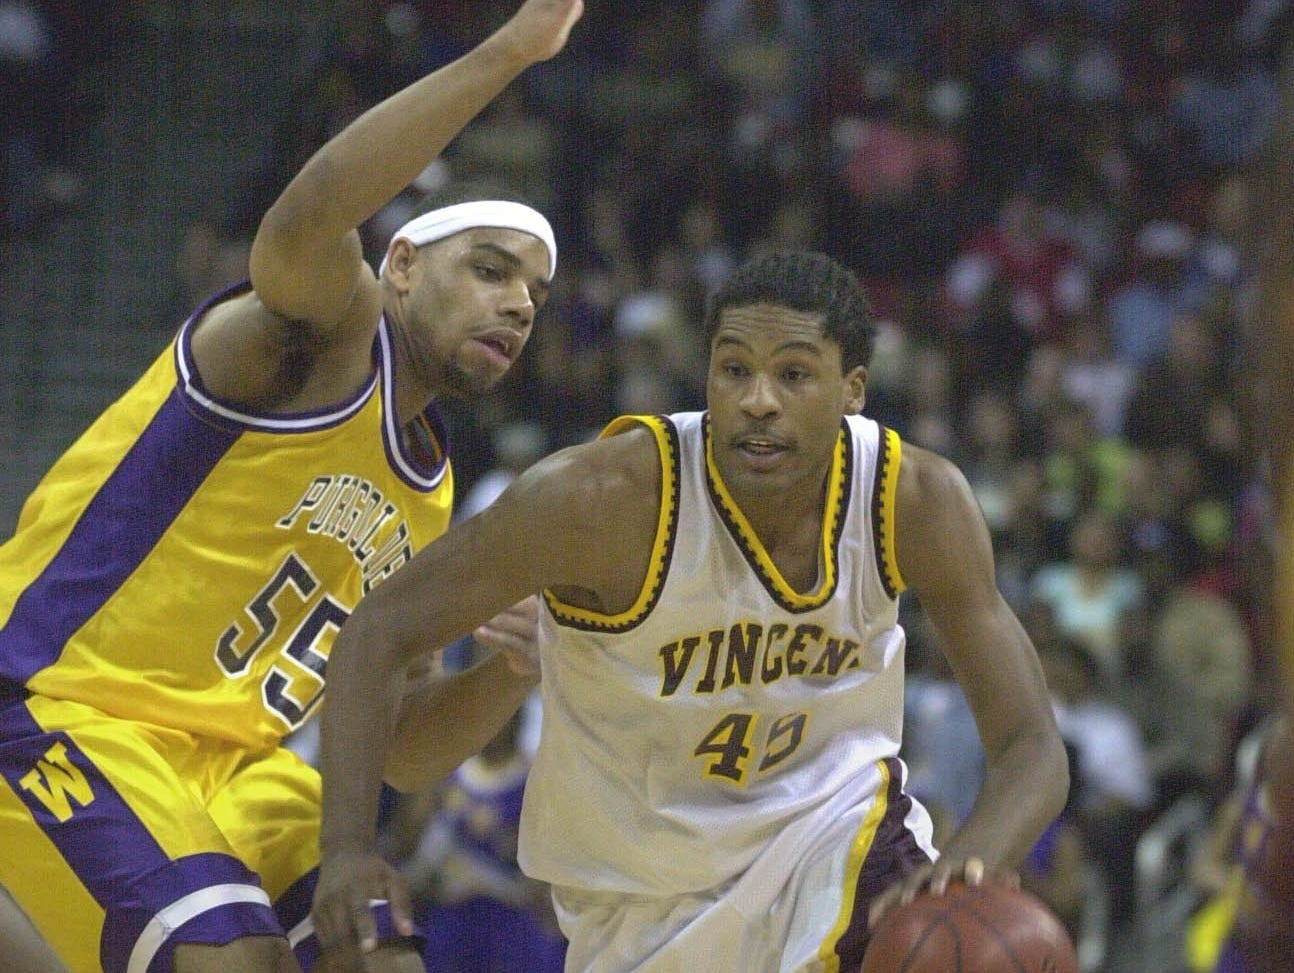 Vincent (45) Quemont Greer charges around Washington (55) Kamarr Davis to win the Division 1 WIAA State Boys Basketball championship title at the Kohl Center, Madison, Saturday, March 18, 2000.